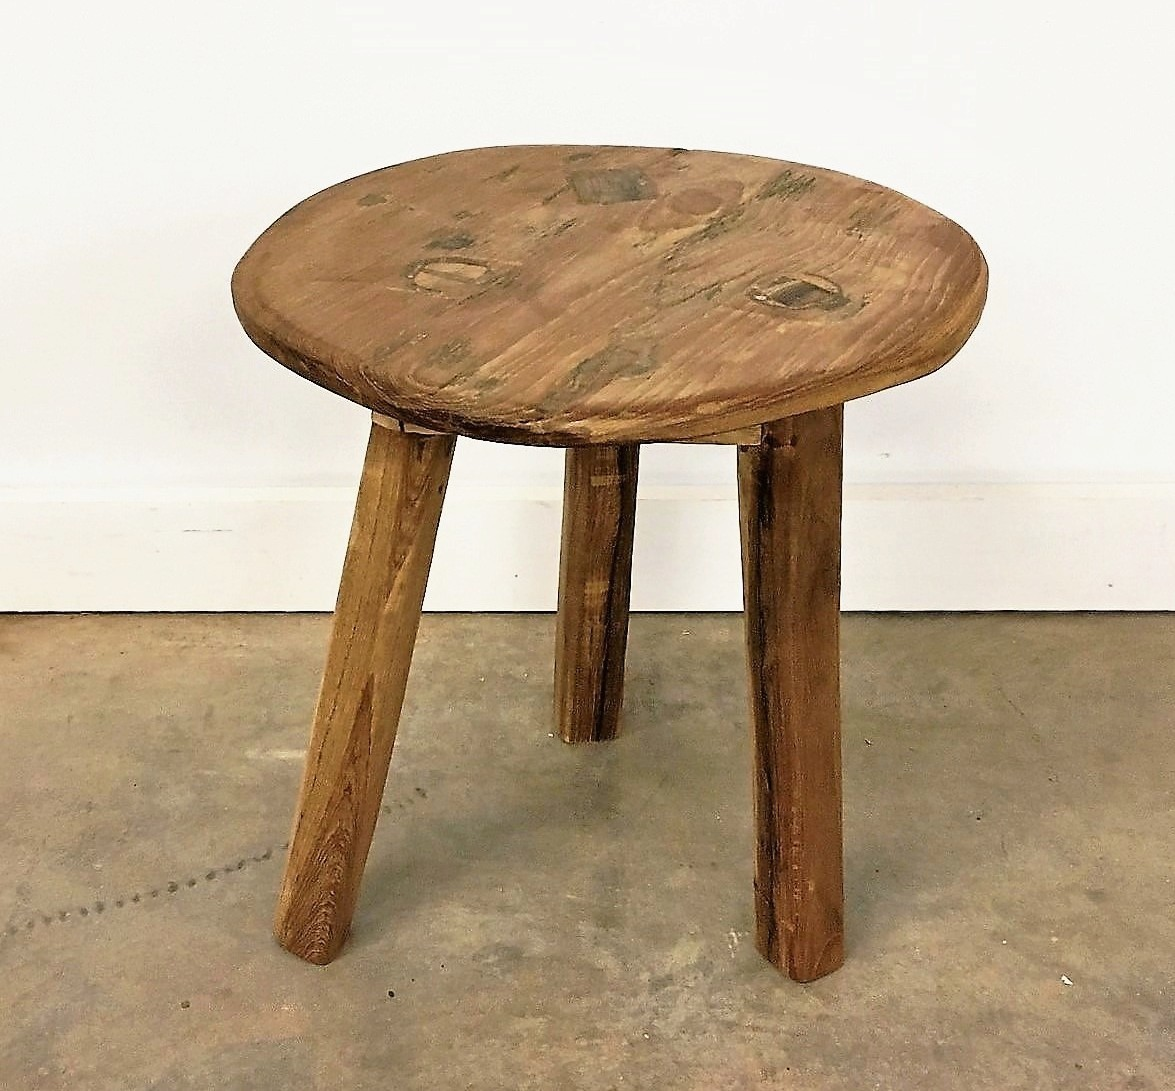 Round Reclaimed Wood Rustic Stool